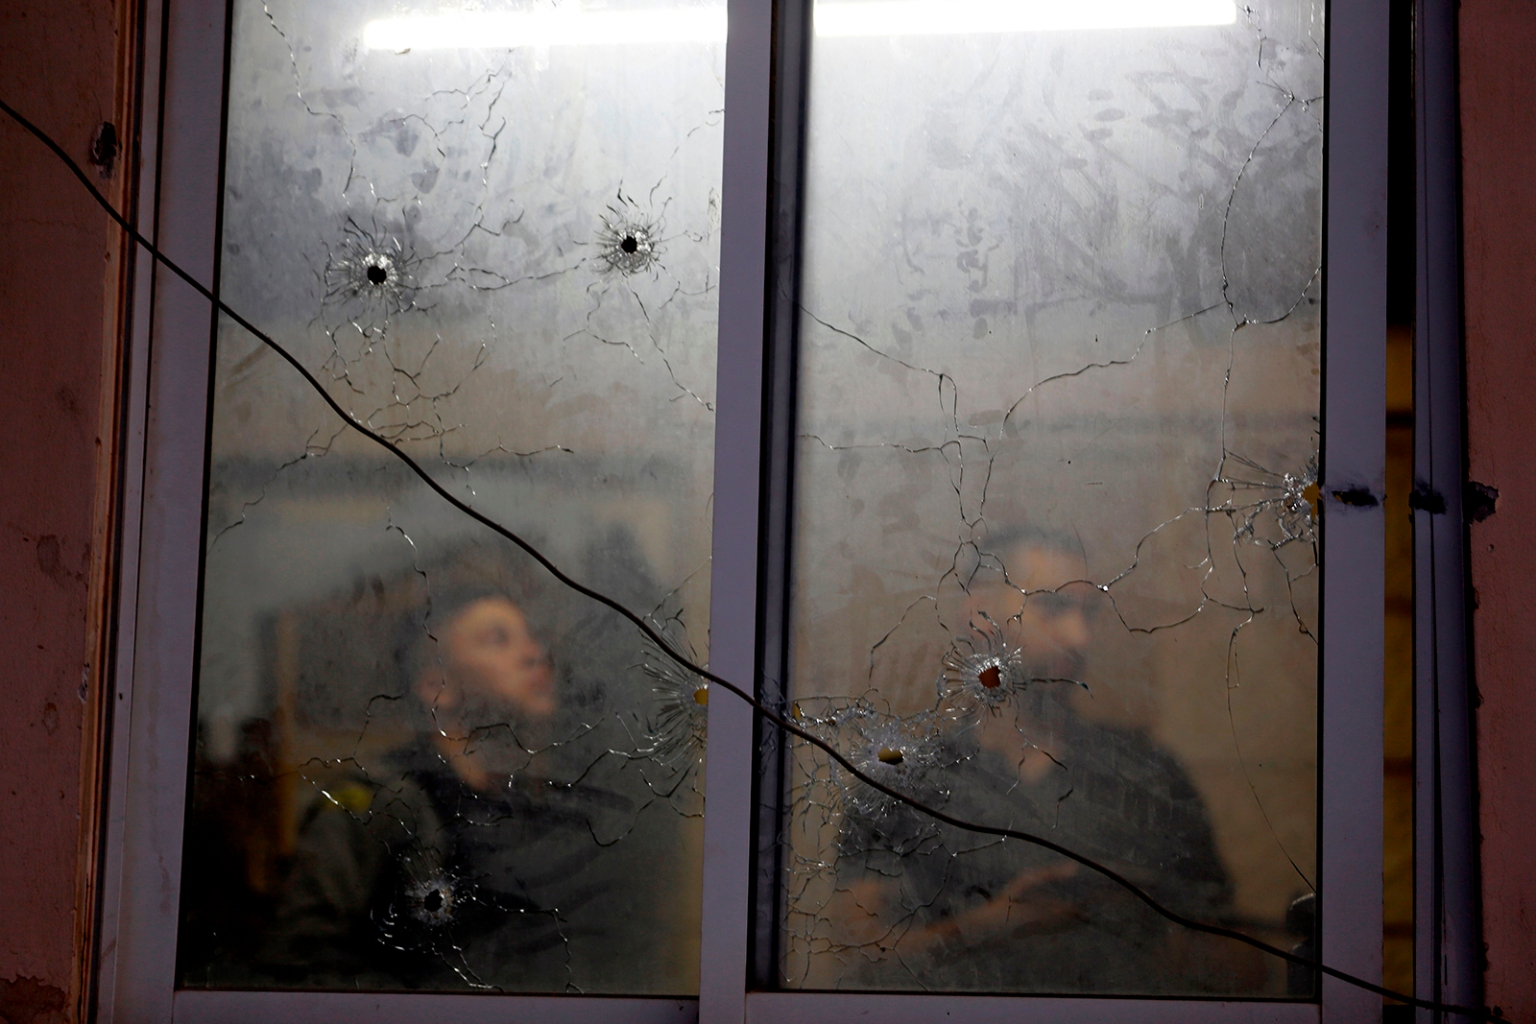 Bullet holes scar the Palestinian Authority security apparatus headquarters in Nablus, in the occupied West Bank, on June 11 after Israeli troops exchanged fire with Palestinian security forces in a rare shootout that Israel's army said was the result of mistaken identity. JAAFAR ASHTIYEH/AFP/Getty Images